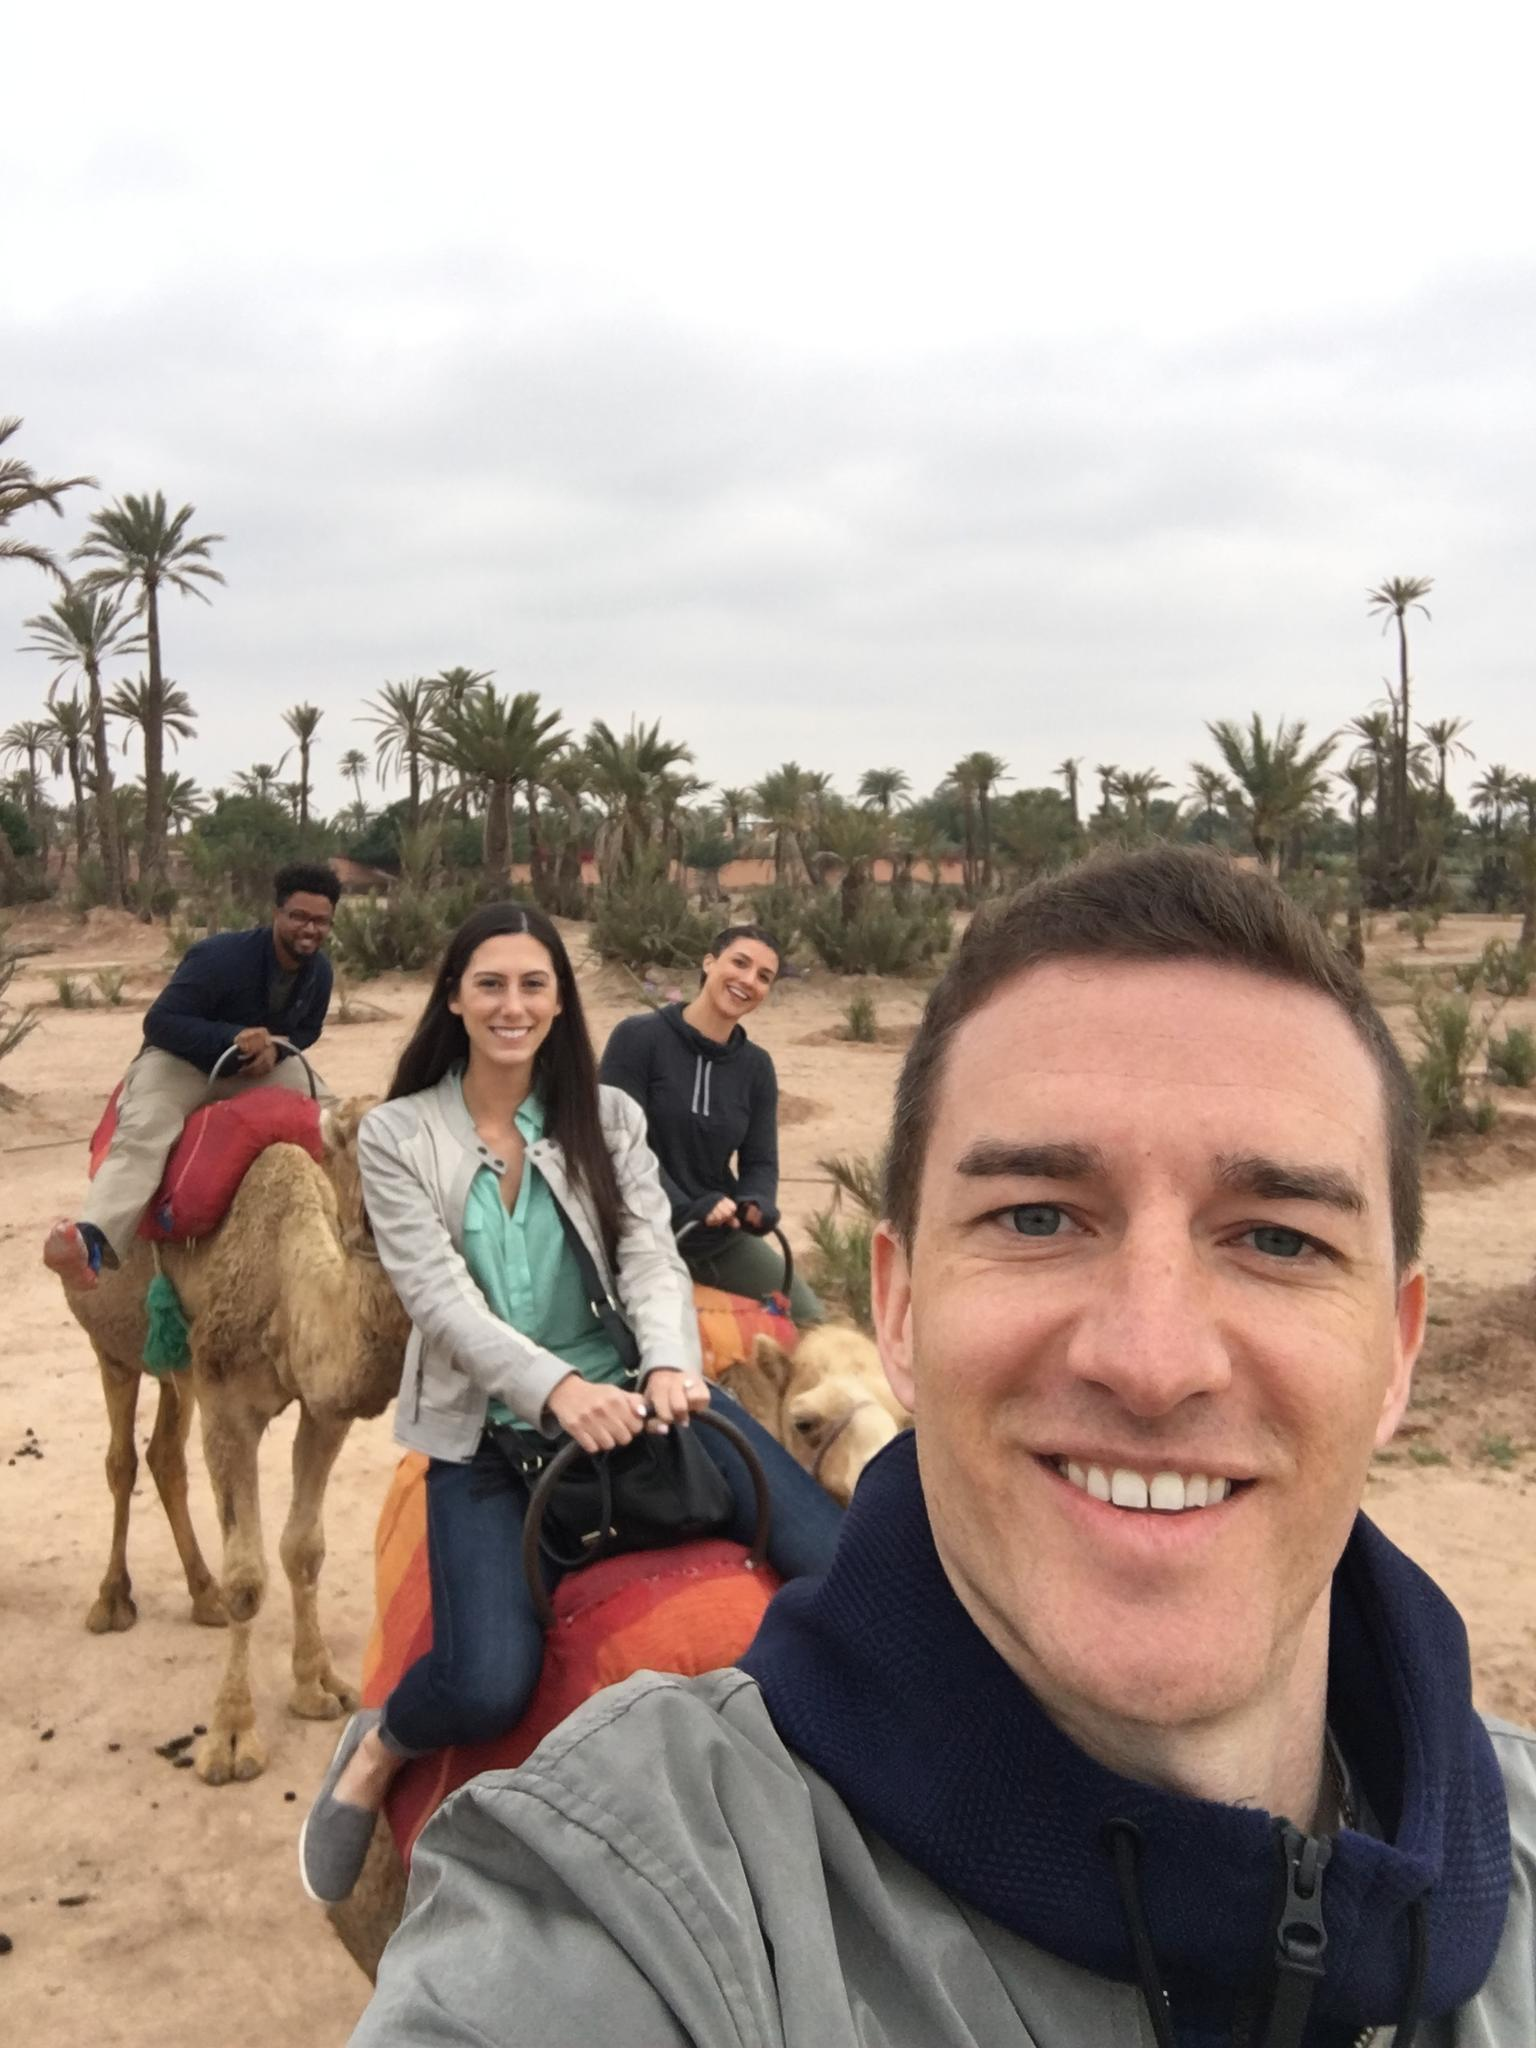 Riding camels in Morocco with Drew and Brittany